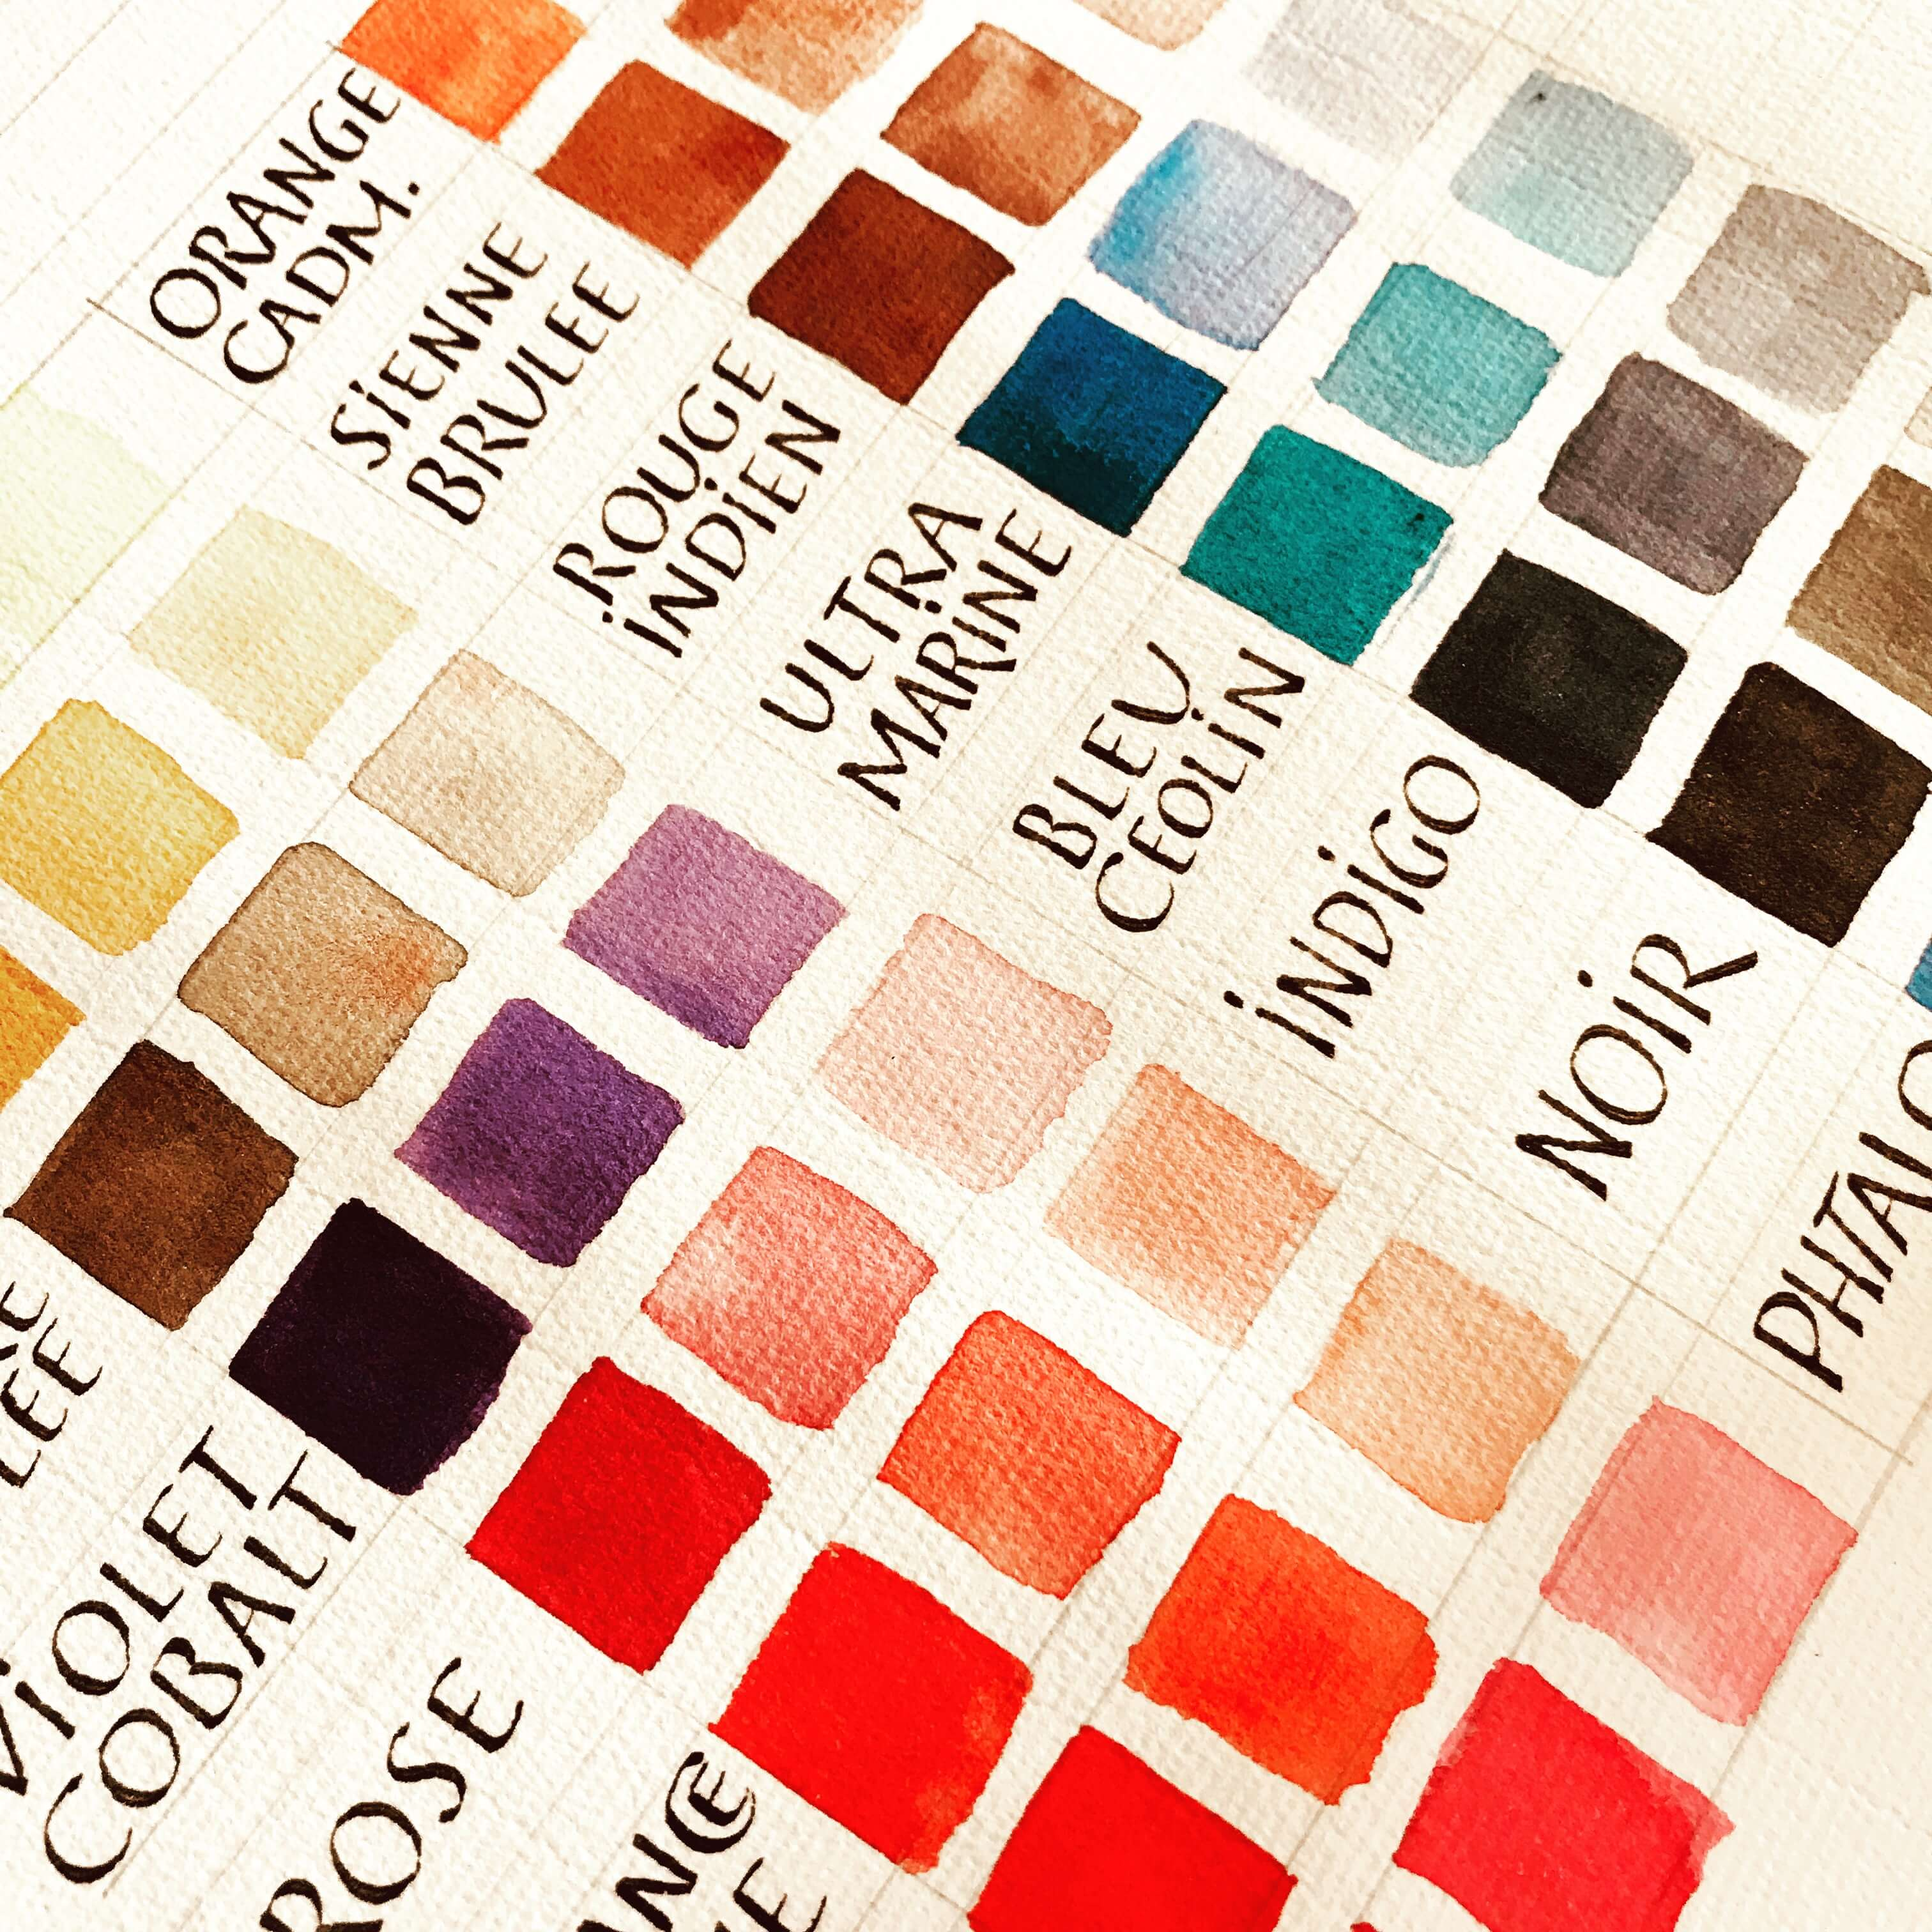 #gouache #color #inspiration #colorchart #colorpalette #colorcombination #couleur